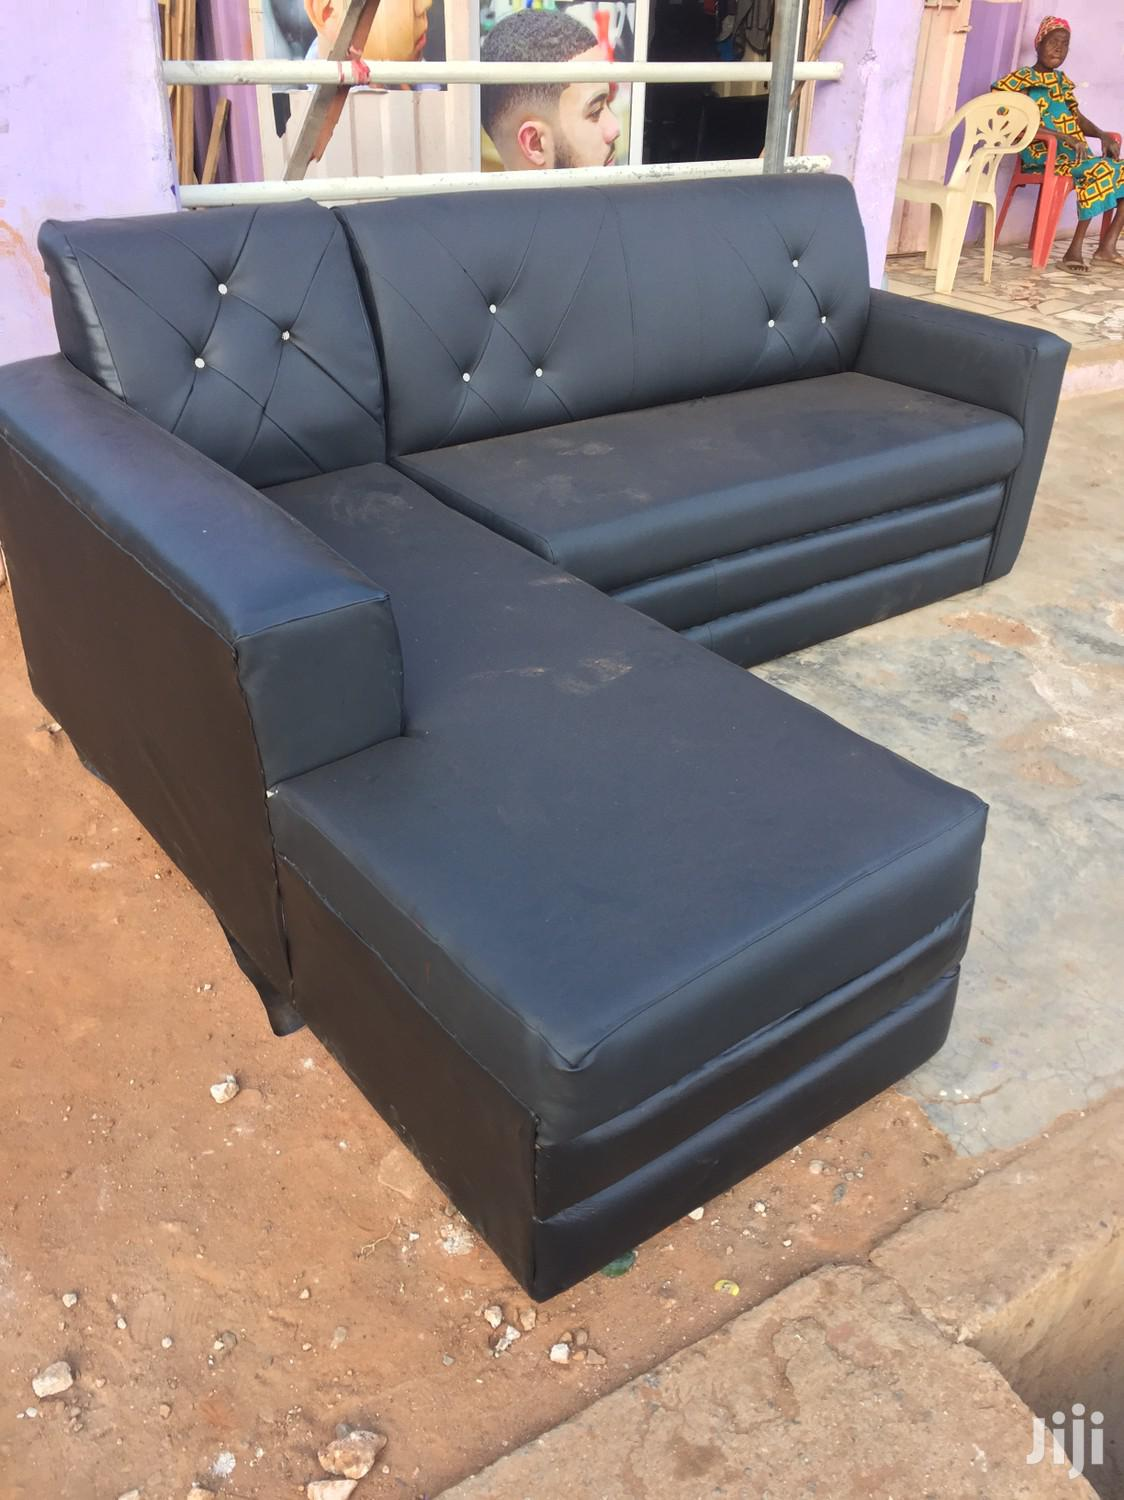 Affordable L Shaped Sofa at a Cool Price. | Furniture for sale in Cantonments, Greater Accra, Ghana